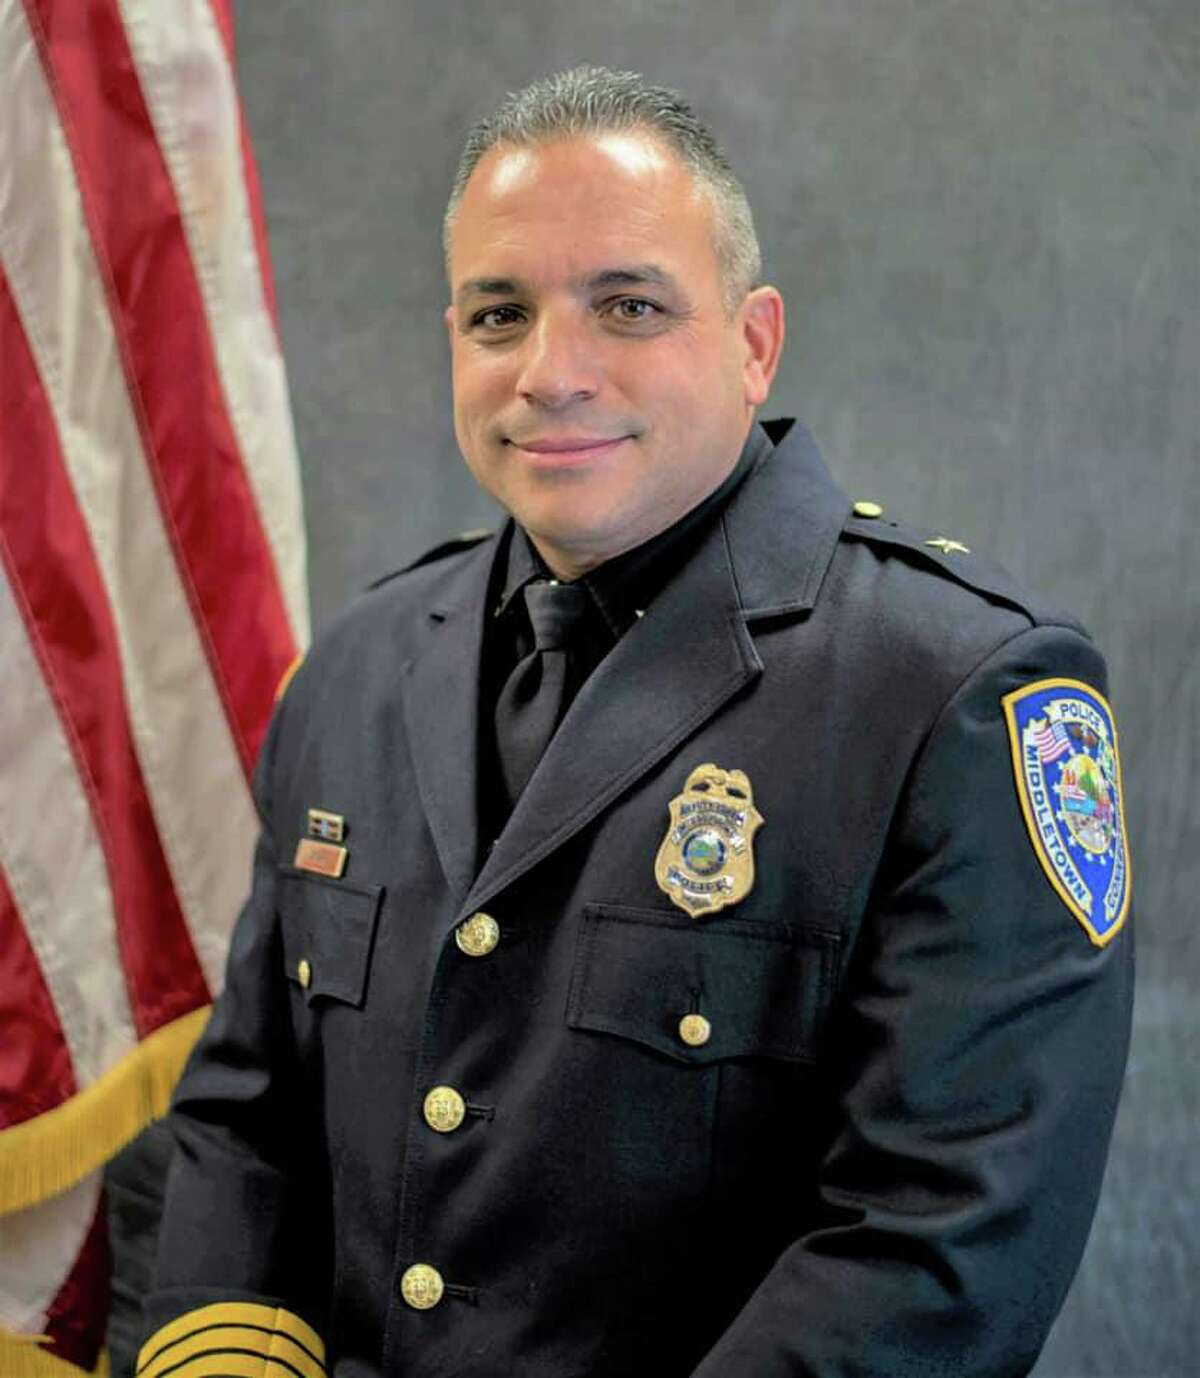 Middletown Police Chief Michael Timbro